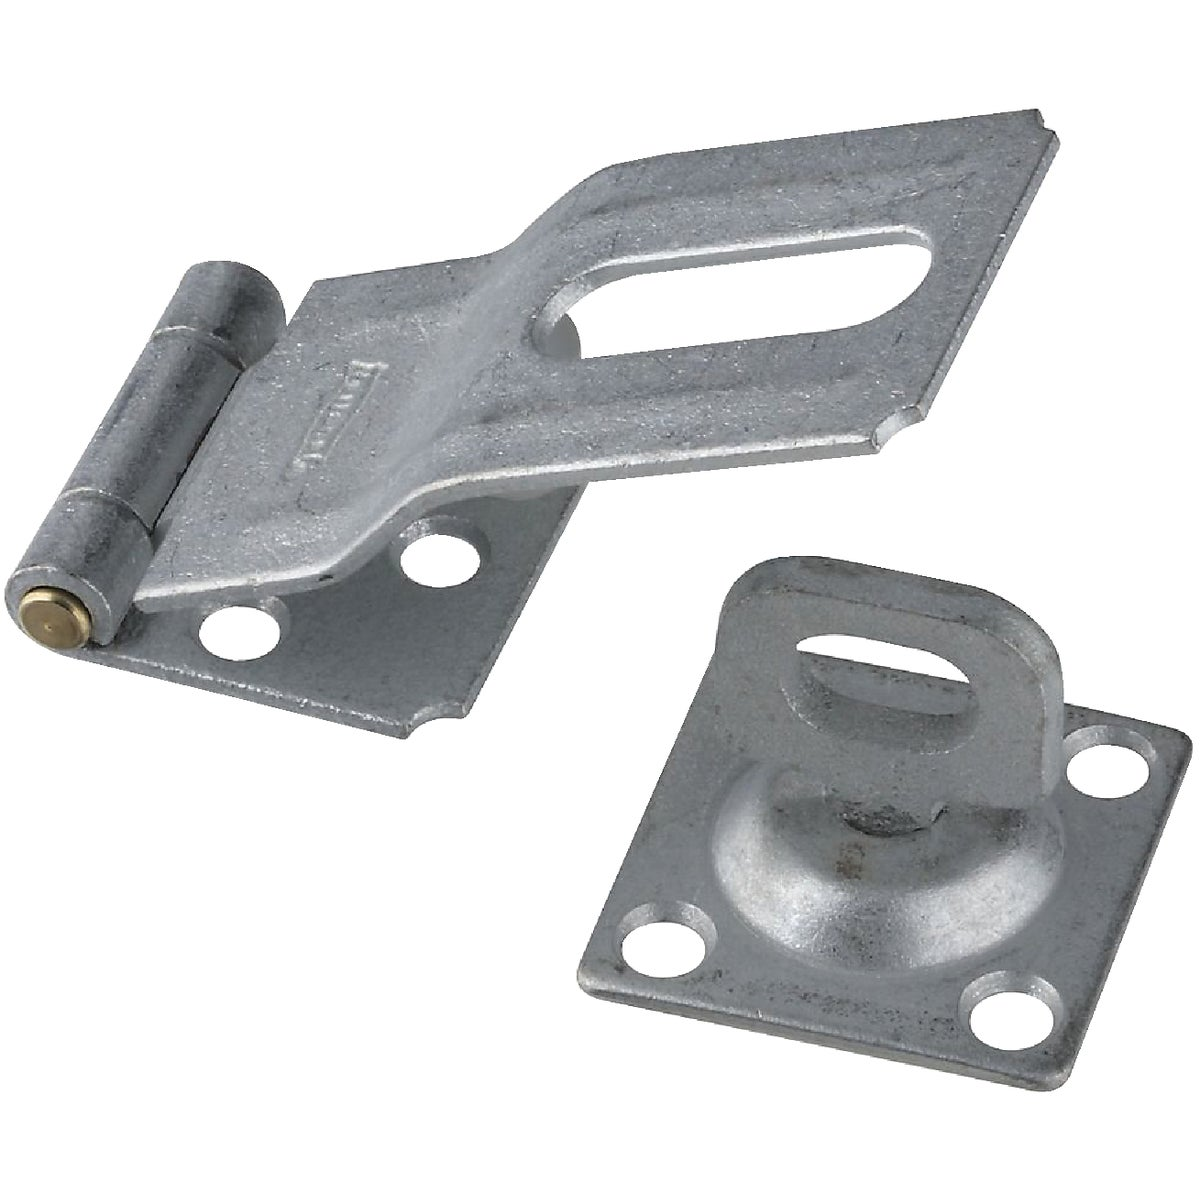 "3-1/4"" GALV SWIVEL HASP - N103044 by National Mfg Co"